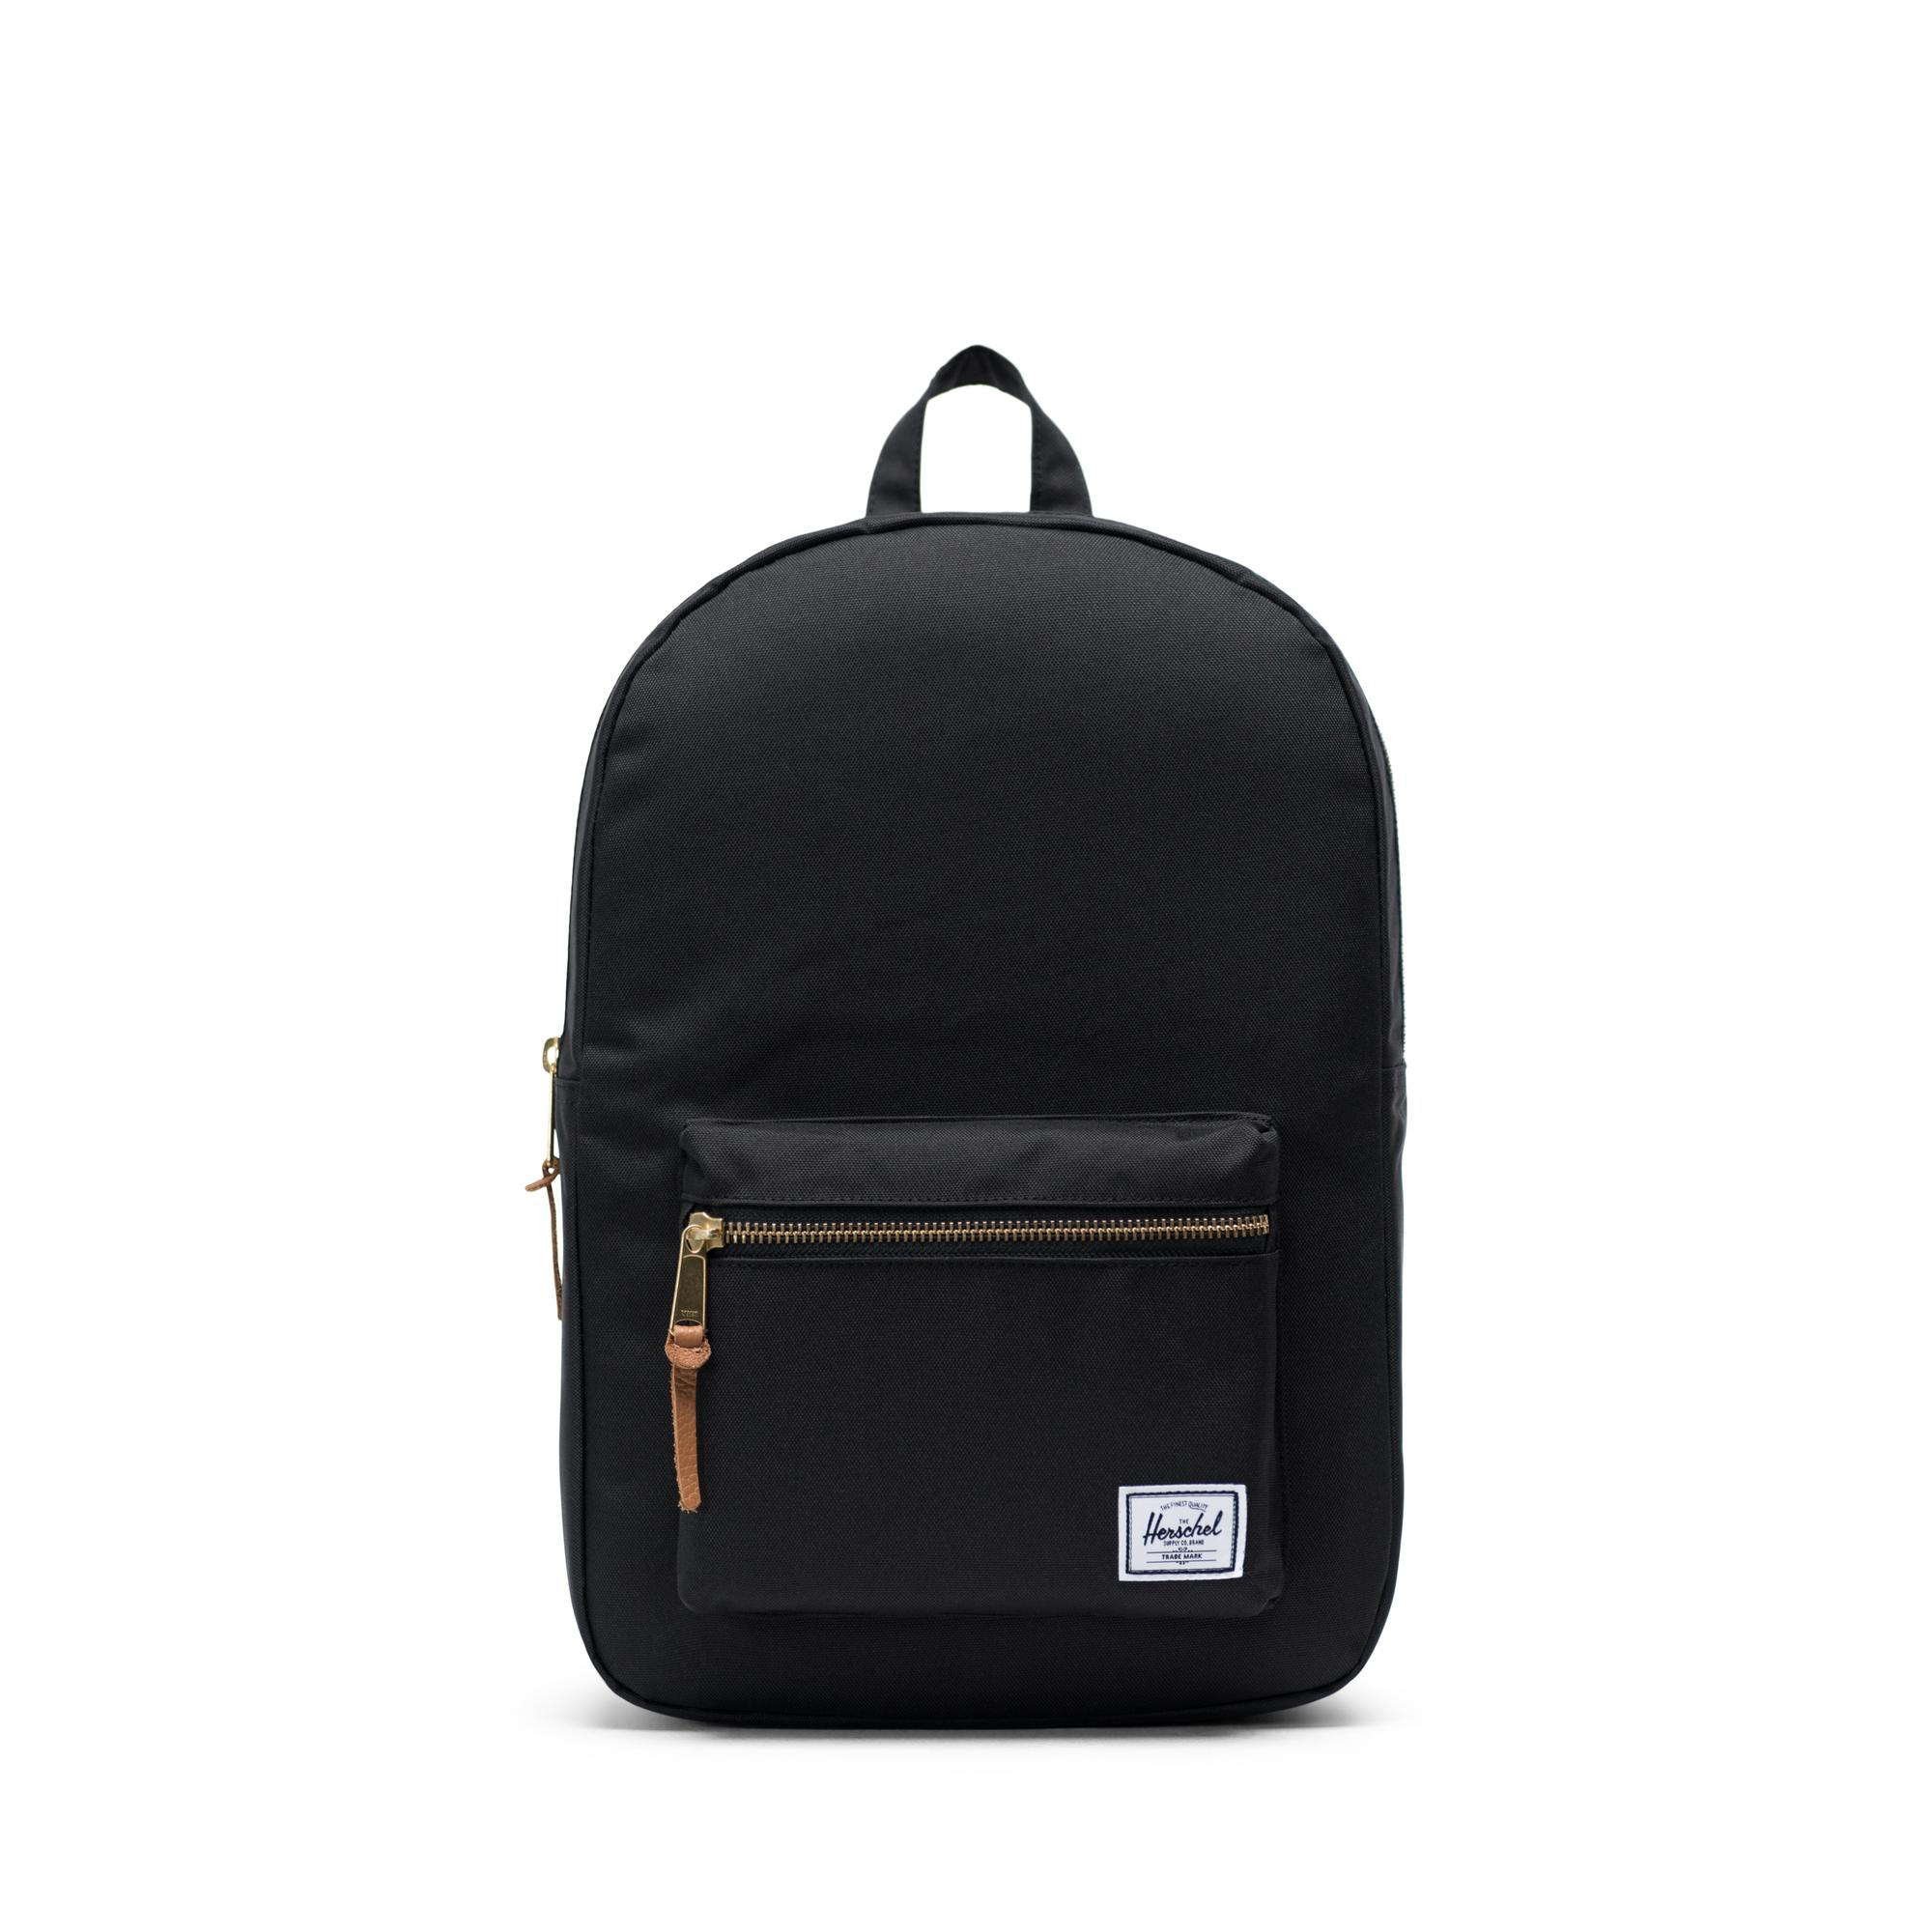 11332f1b7b9 Settlement Backpack Mid-Volume